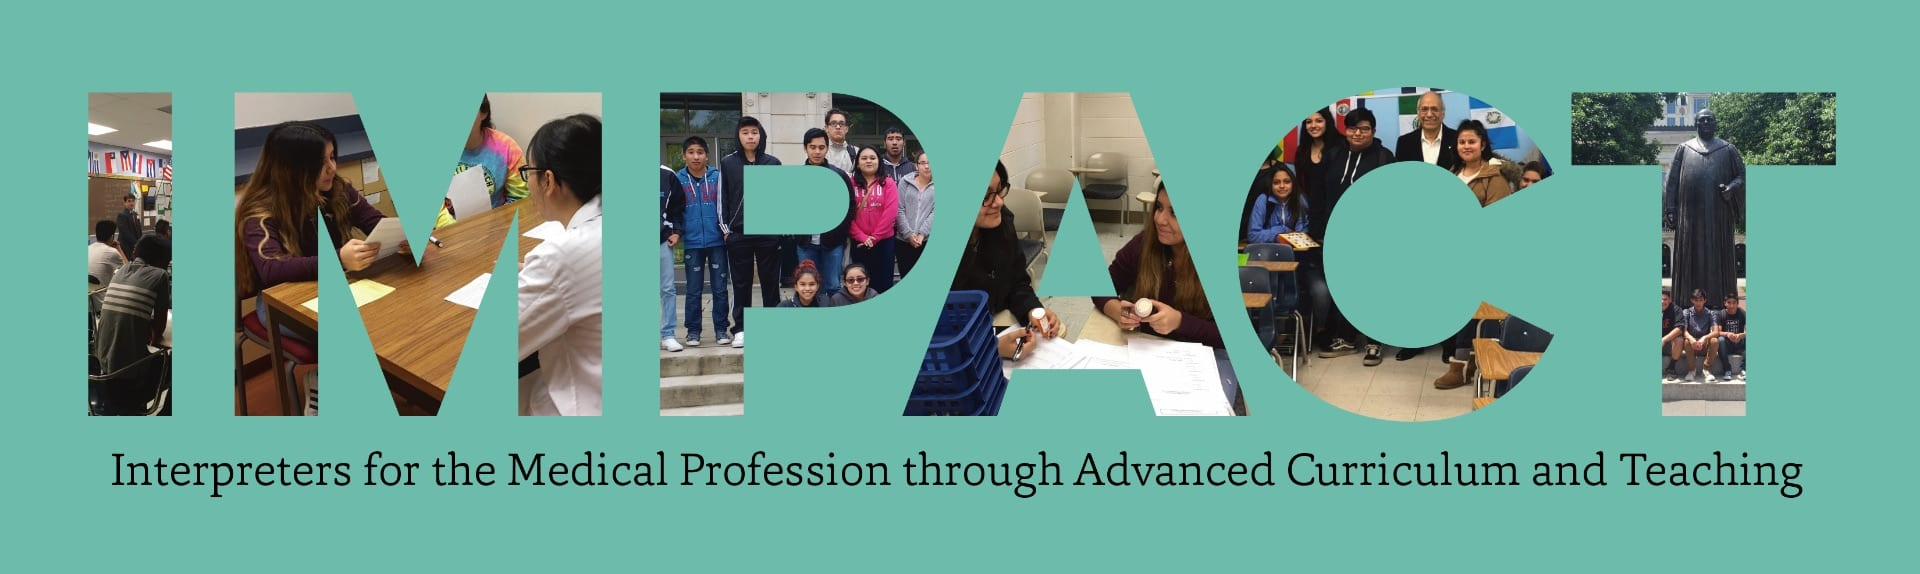 IMAPCT banner with pictures of students